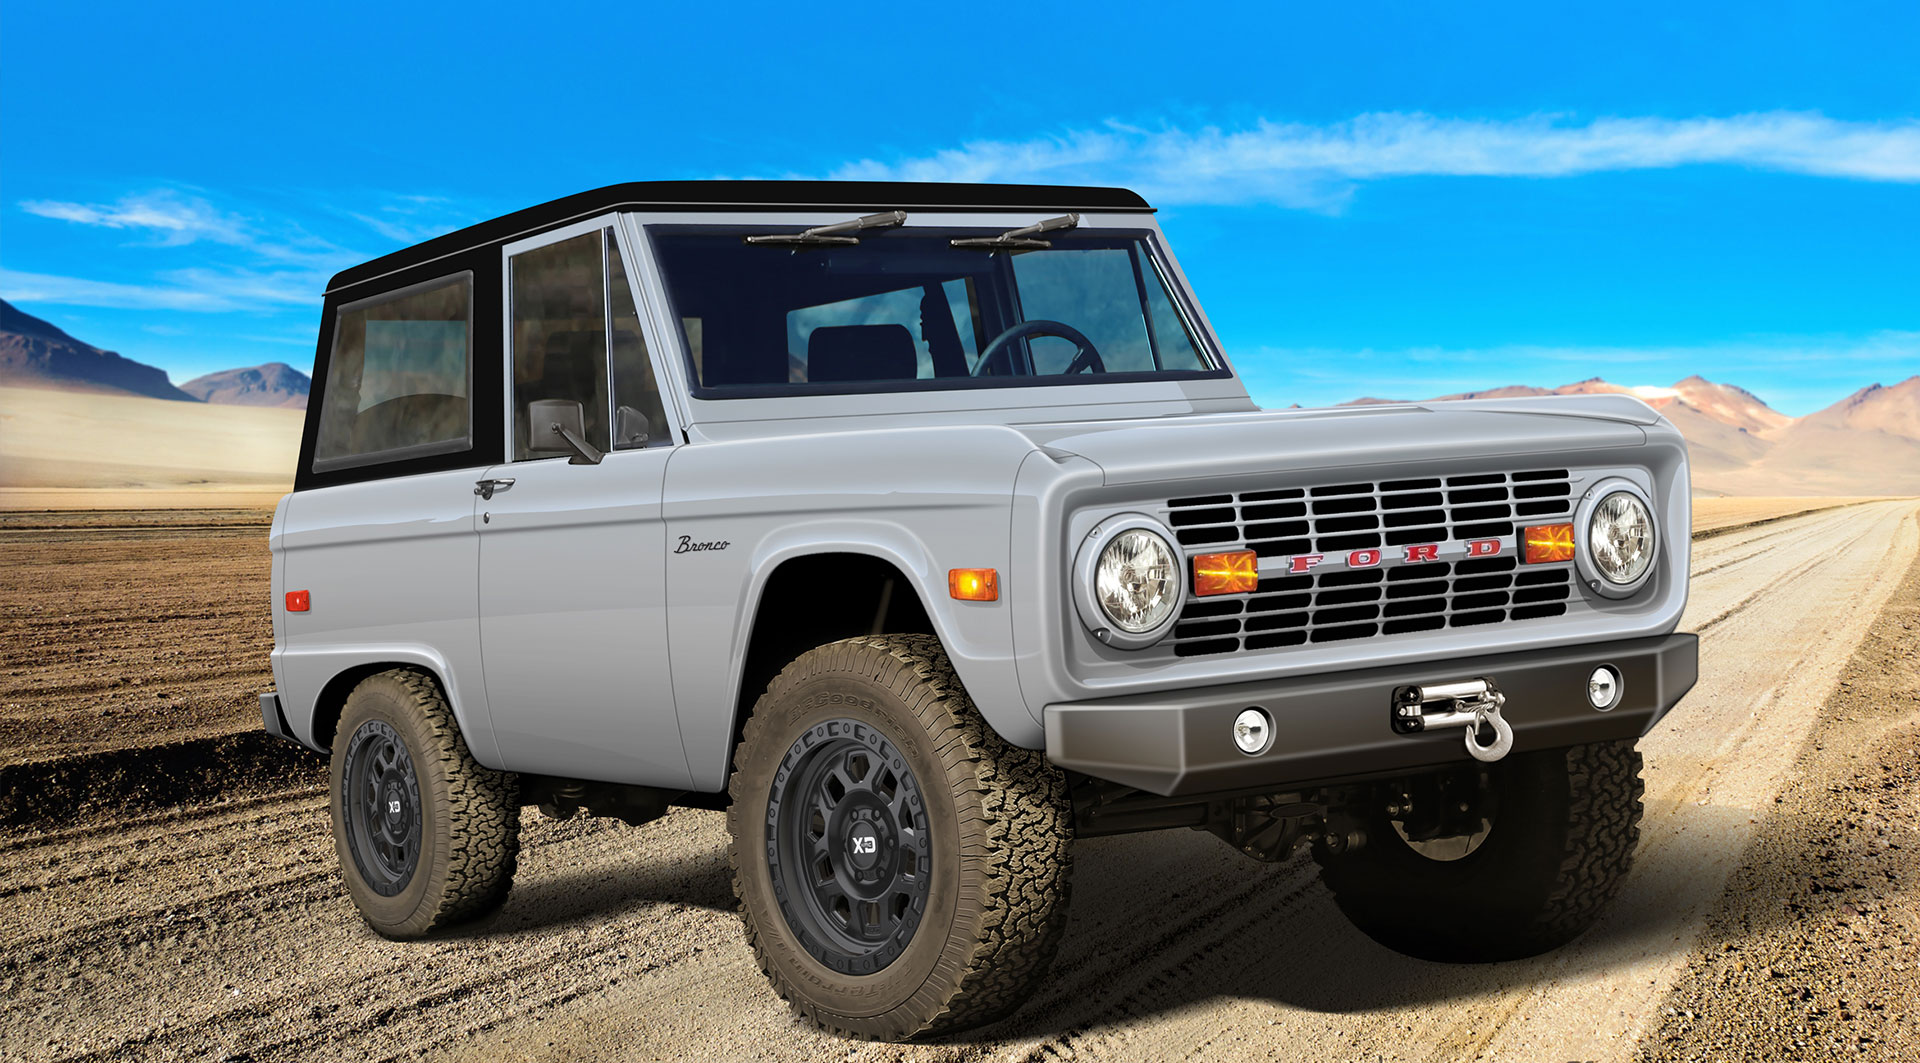 CR Bronco built by Classic Recreations